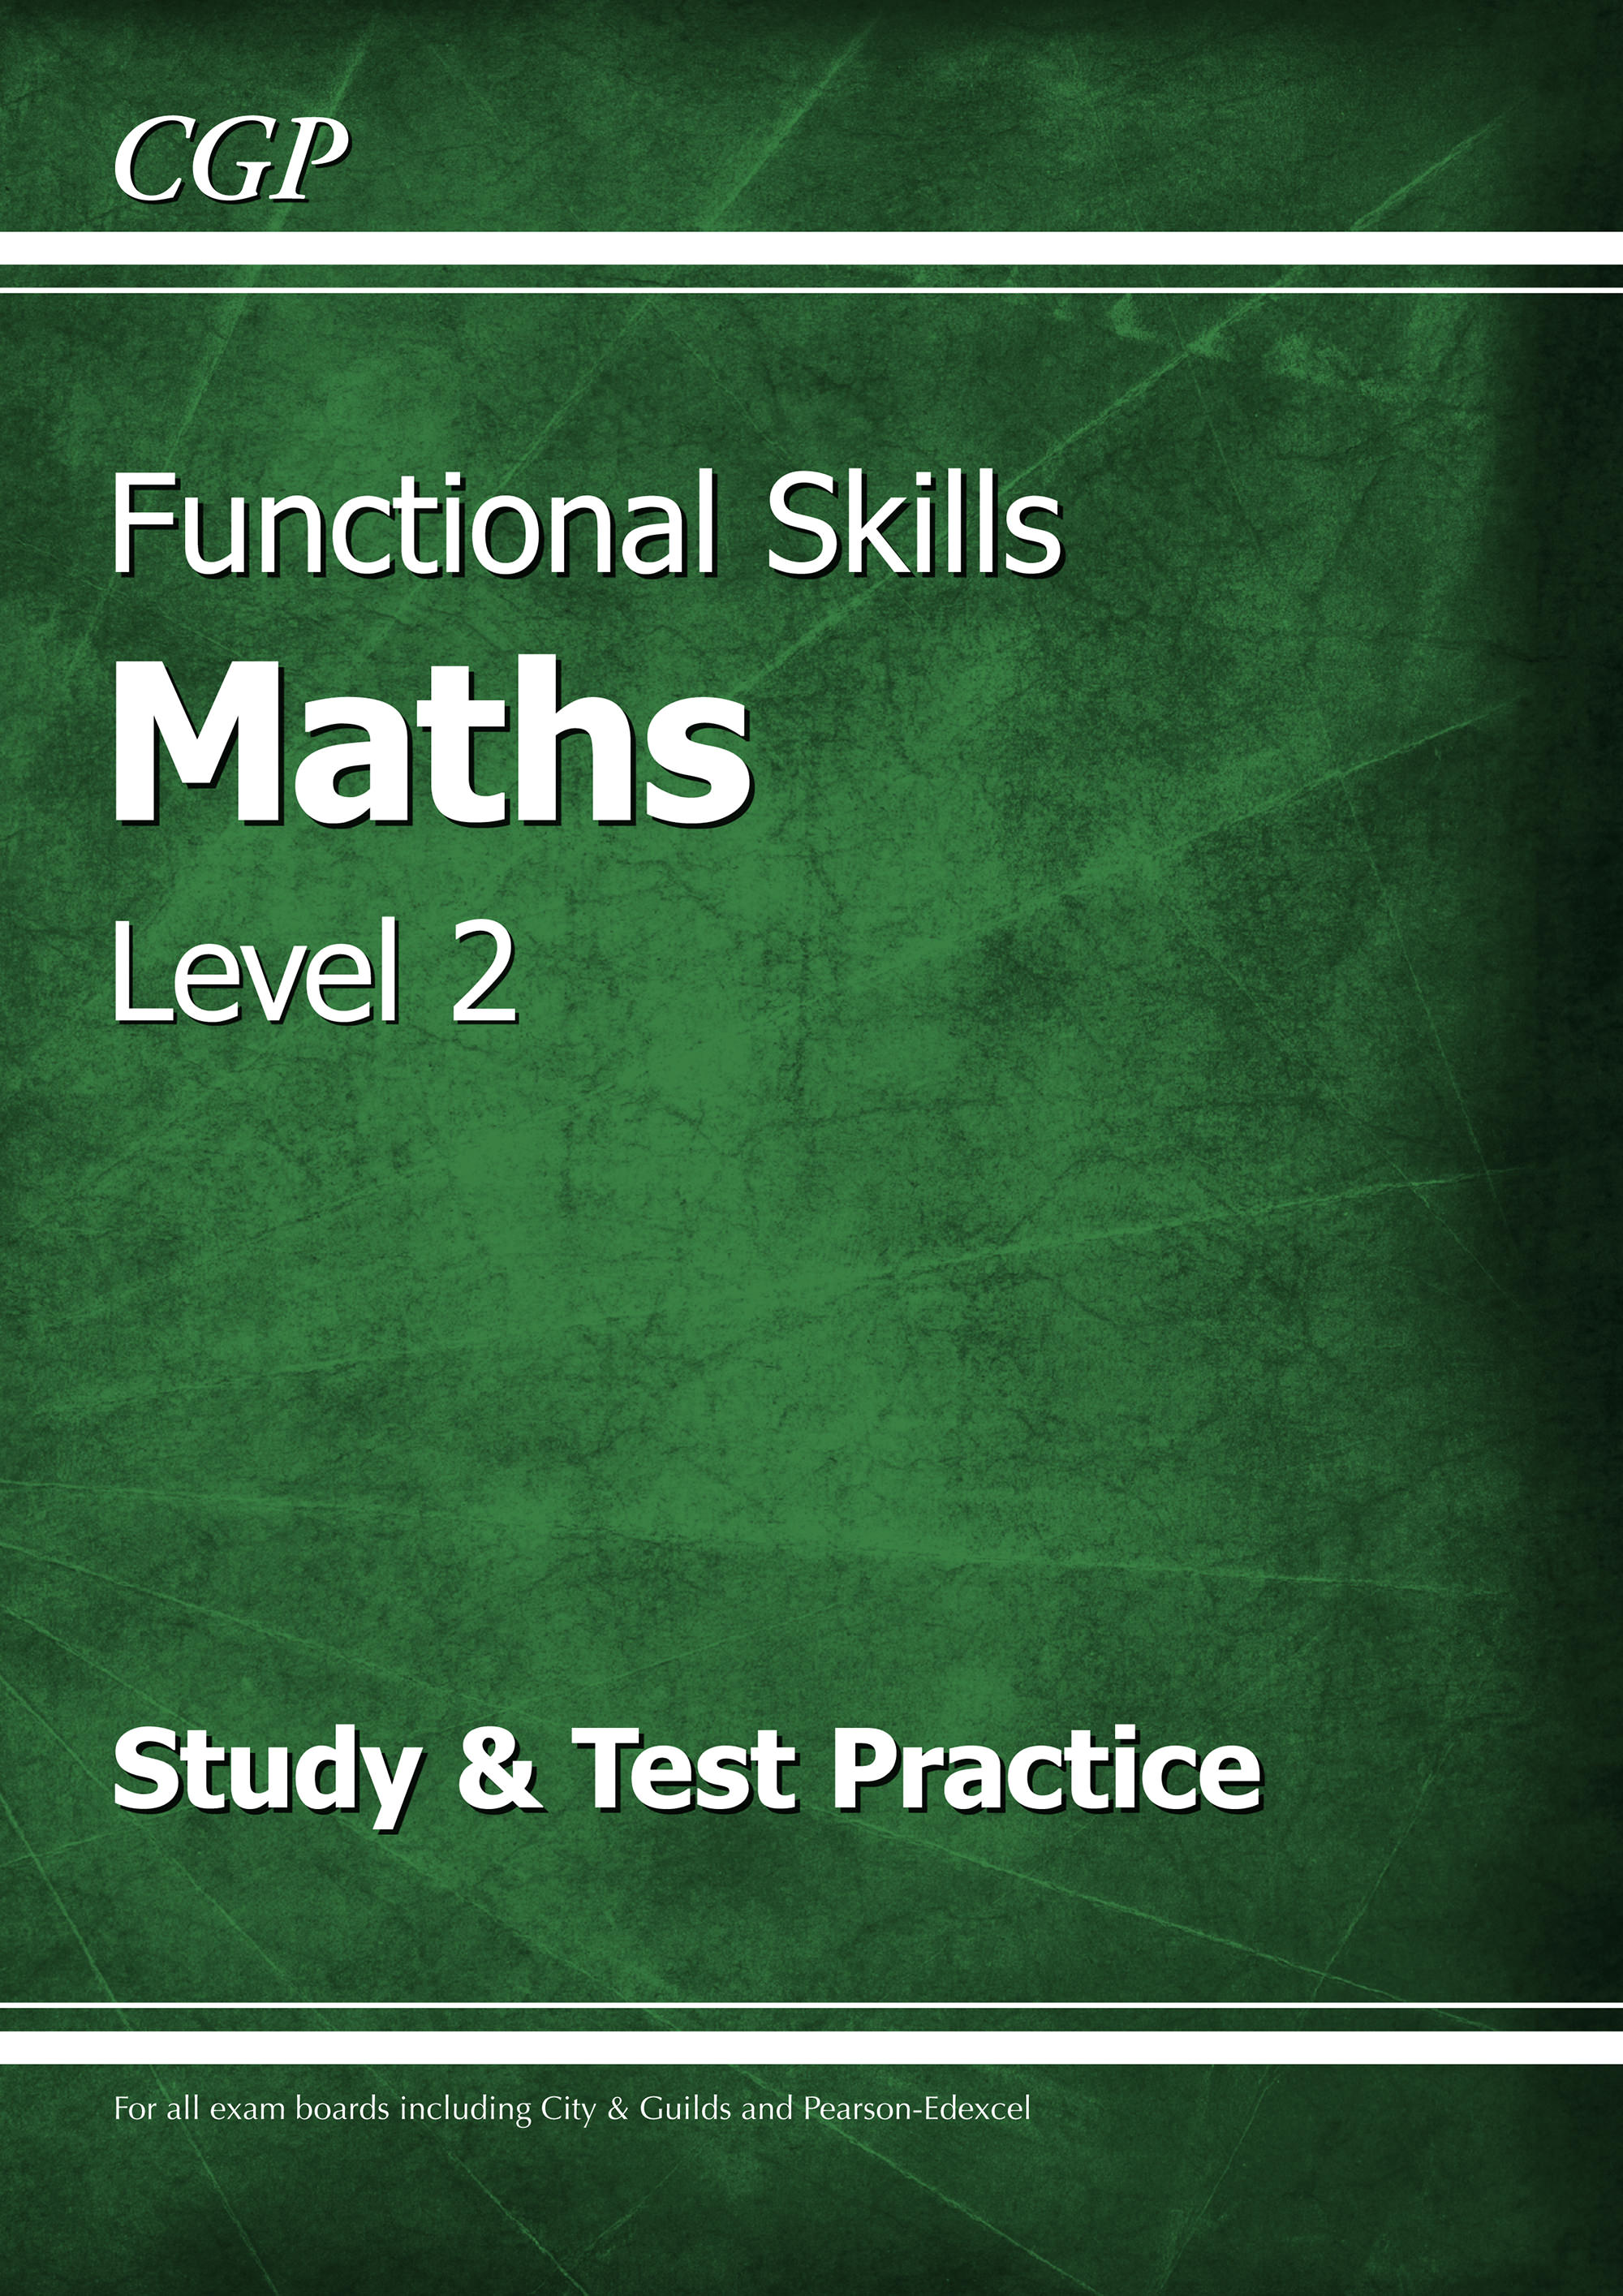 M2SRA2 - Functional Skills Maths Level 2 - Study & Test Practice